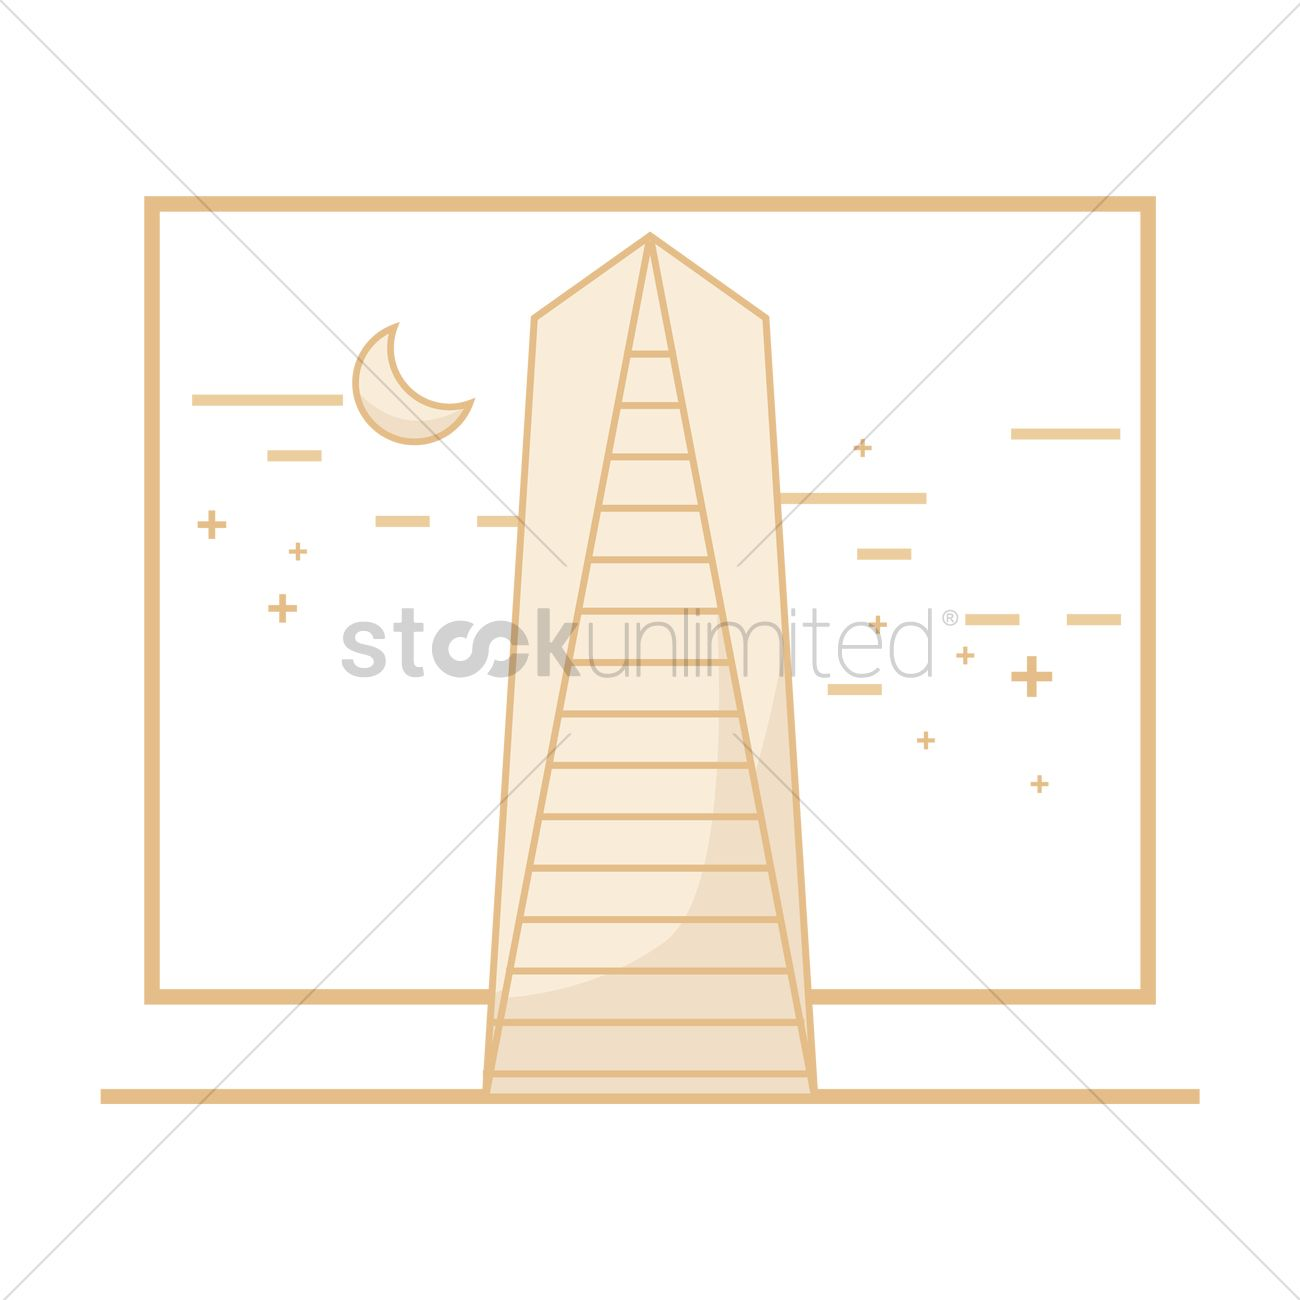 Northeast asia trade tower incheon Vector Image - 2014766